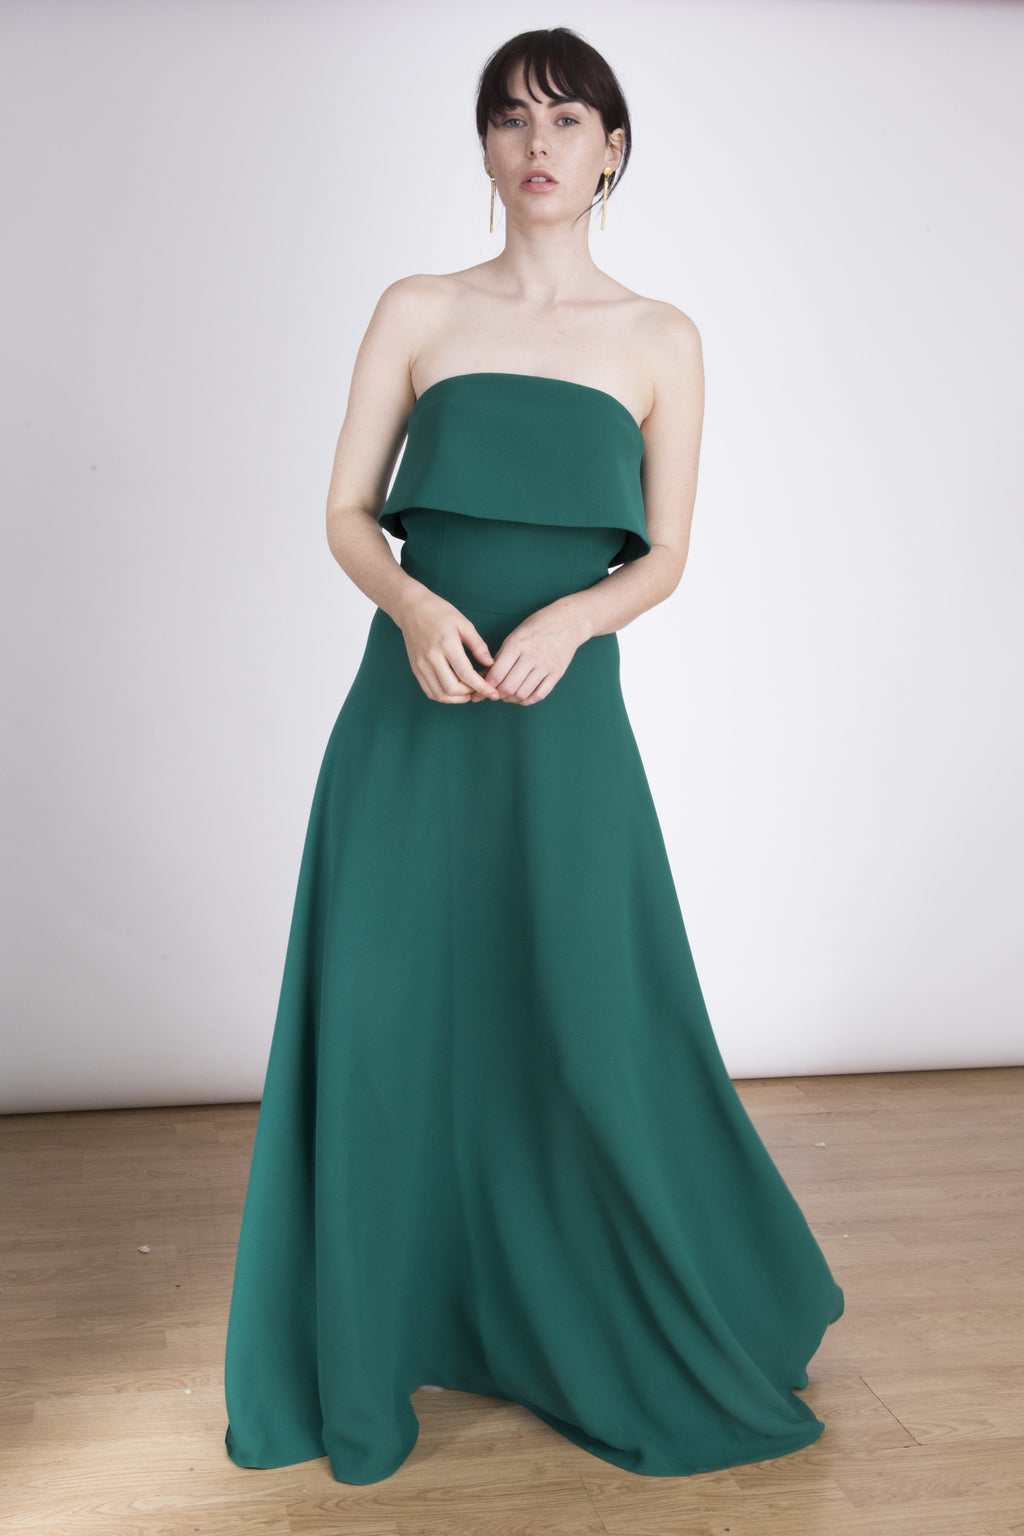 Lauren Lynn London Dress, Lauren Lynn London signature maxi dress, strapless dress, strapless maxi dress, green strapless maxi dress with ruffle, ruffle maxi dress. Vestido largo palabra de honor, vestido largo palabra de honor y volante, maxi vestido verde palabra de honor. Precioso vestido para invitada de bodas,